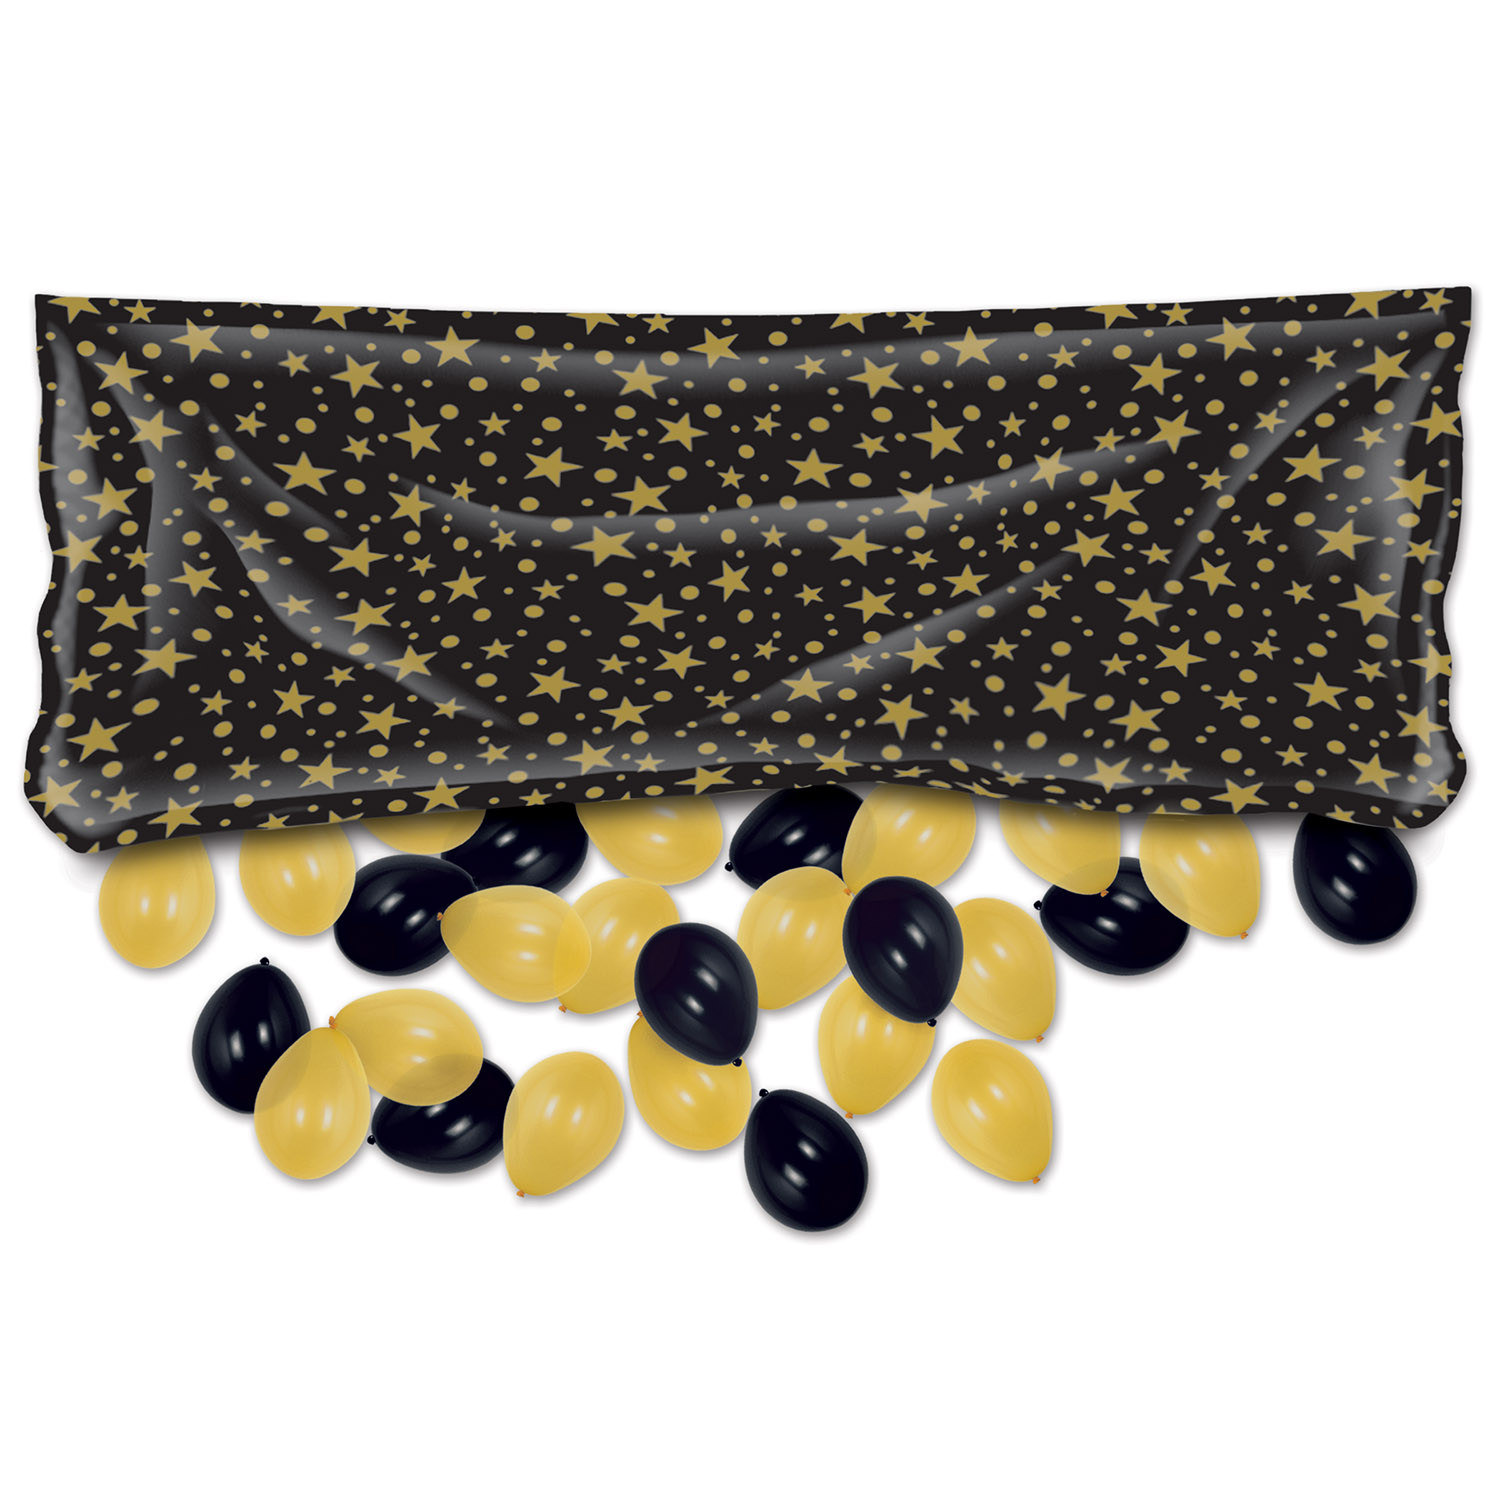 Plastic Balloon Bag (Pack of 1) plastic, balloon, bag, new years eve, gold, black, wholesale, inexpensive, bulk